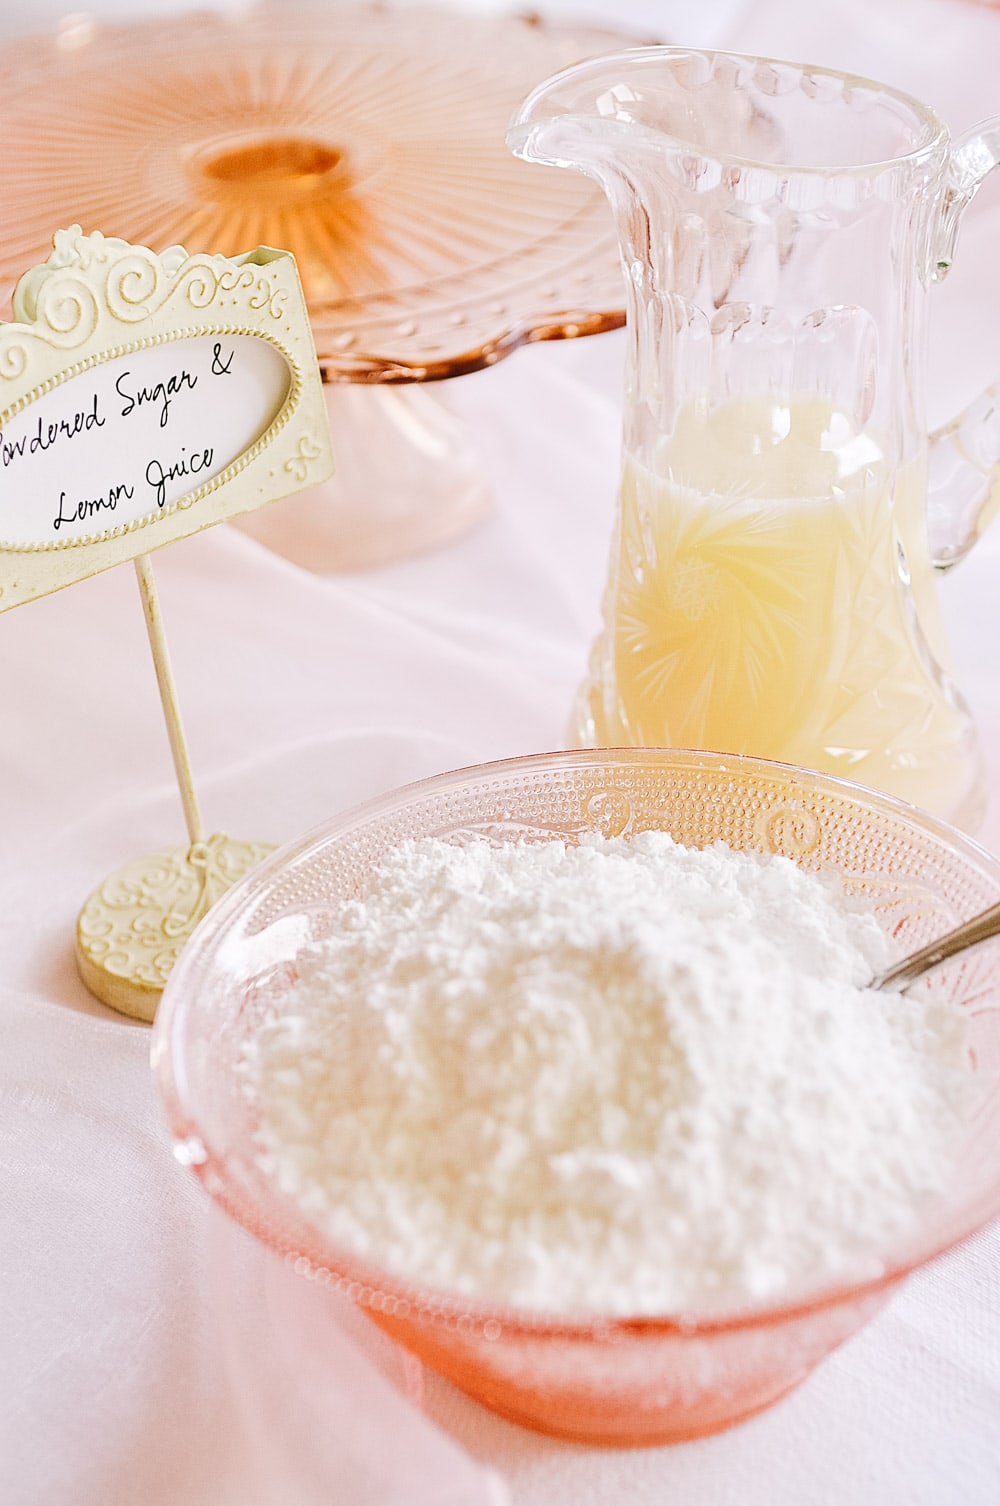 powdered sugar for crepe bar